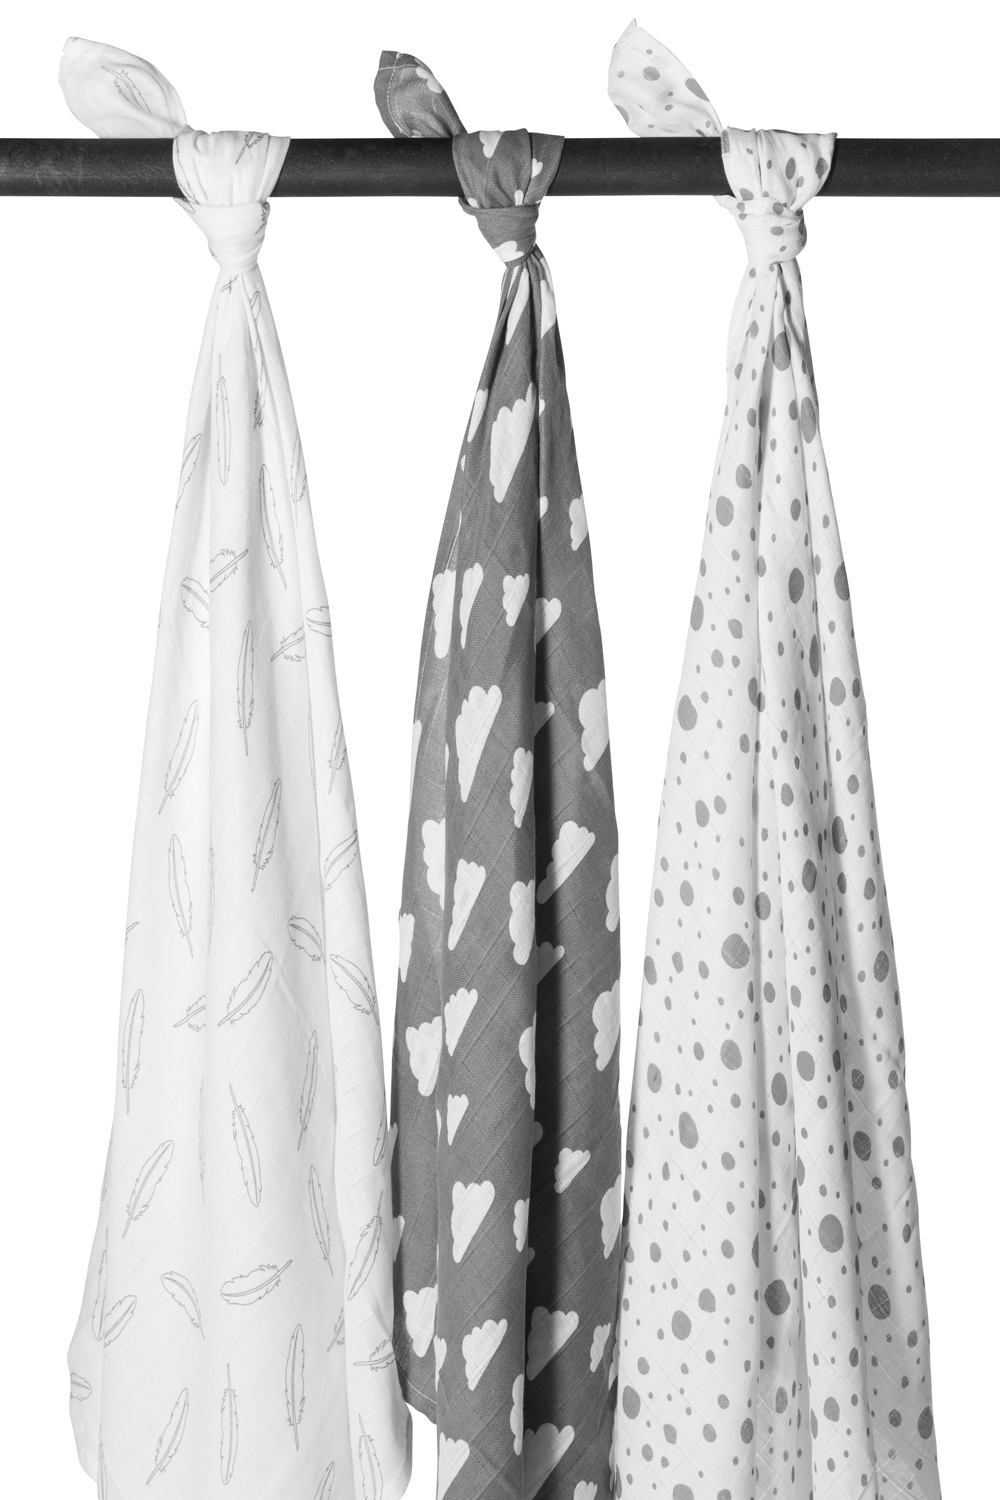 Musselin Swaddles 3-Pack Feathers-Clouds-Dots - Grau/Weiß - 120x120cm